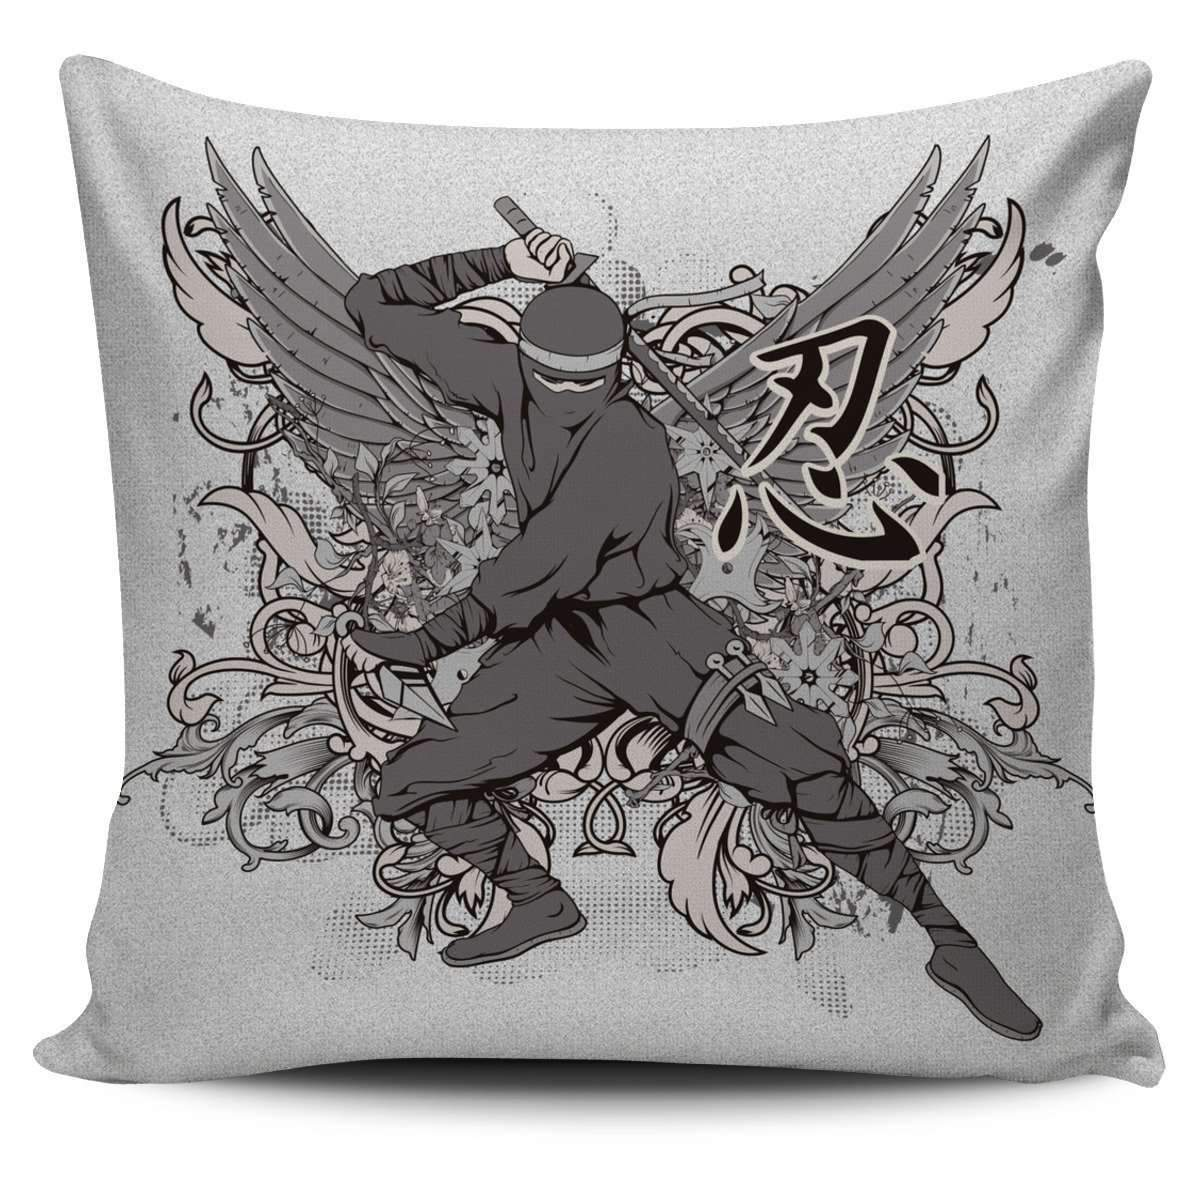 Shopeholic:Ninja 2 - Pillow Covers